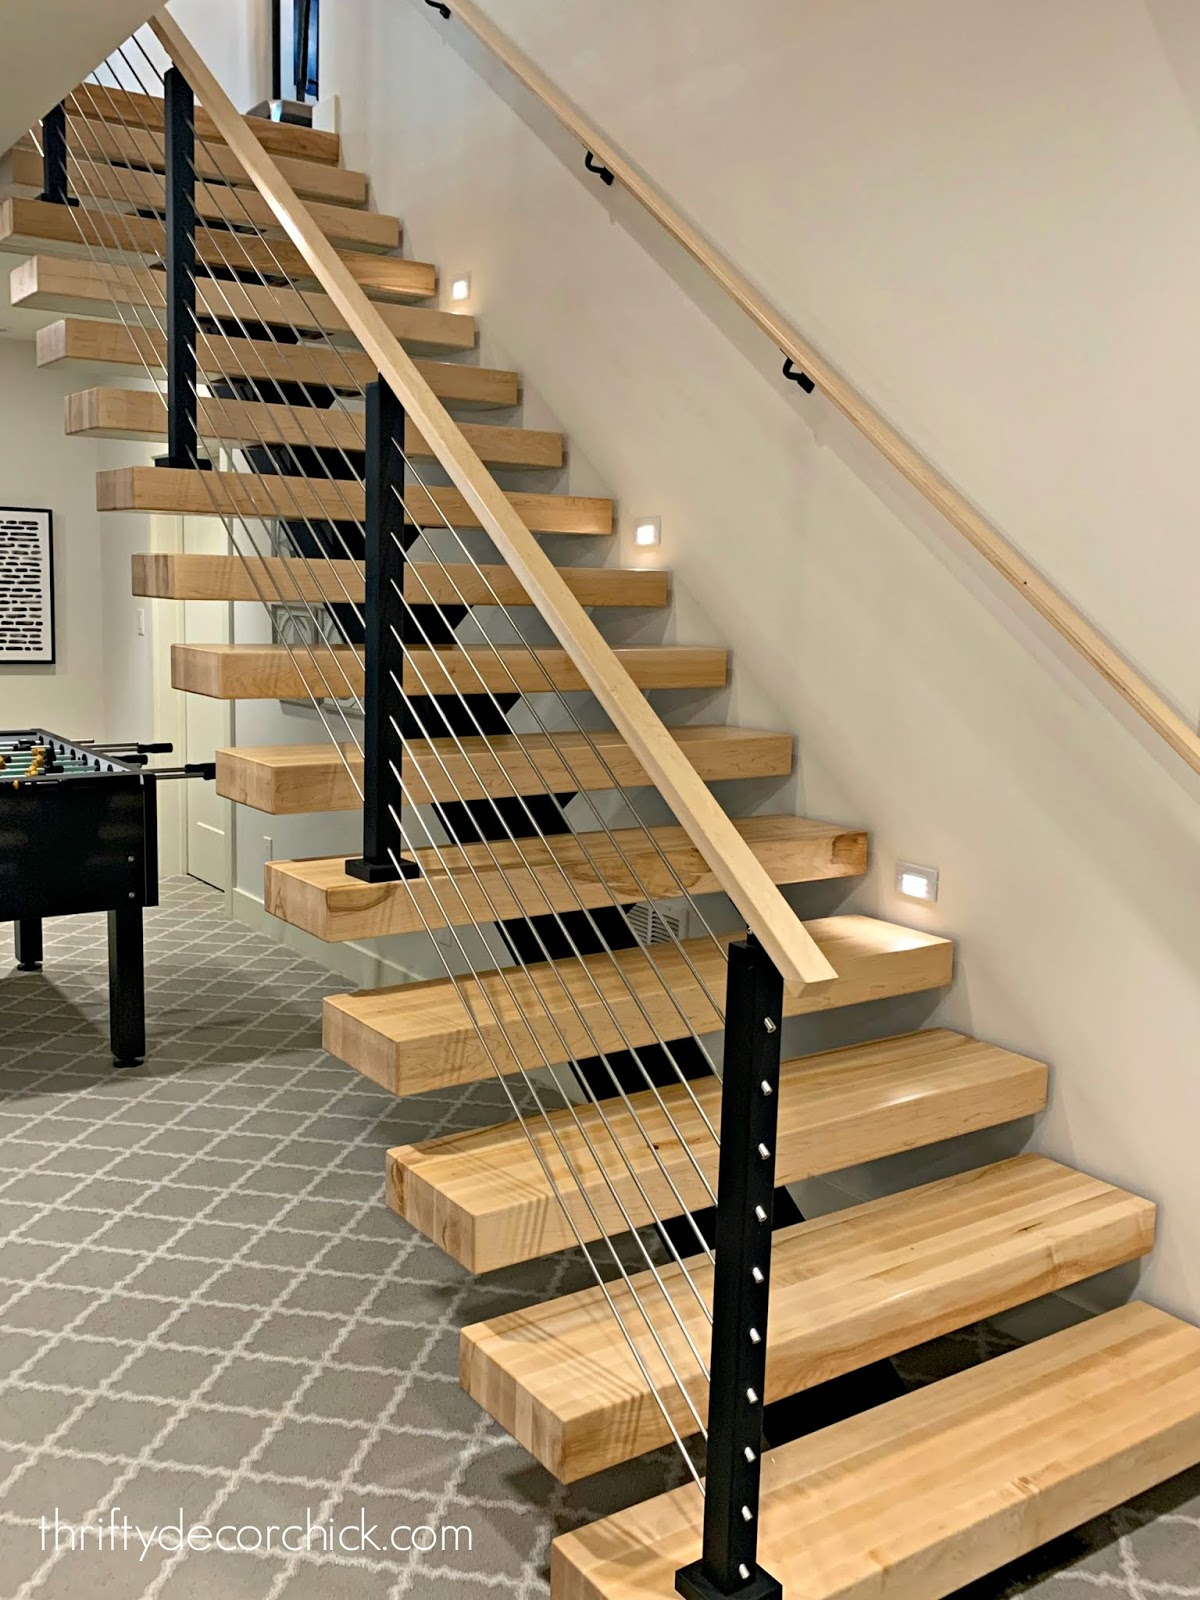 Modern open wood stairs with metal railings